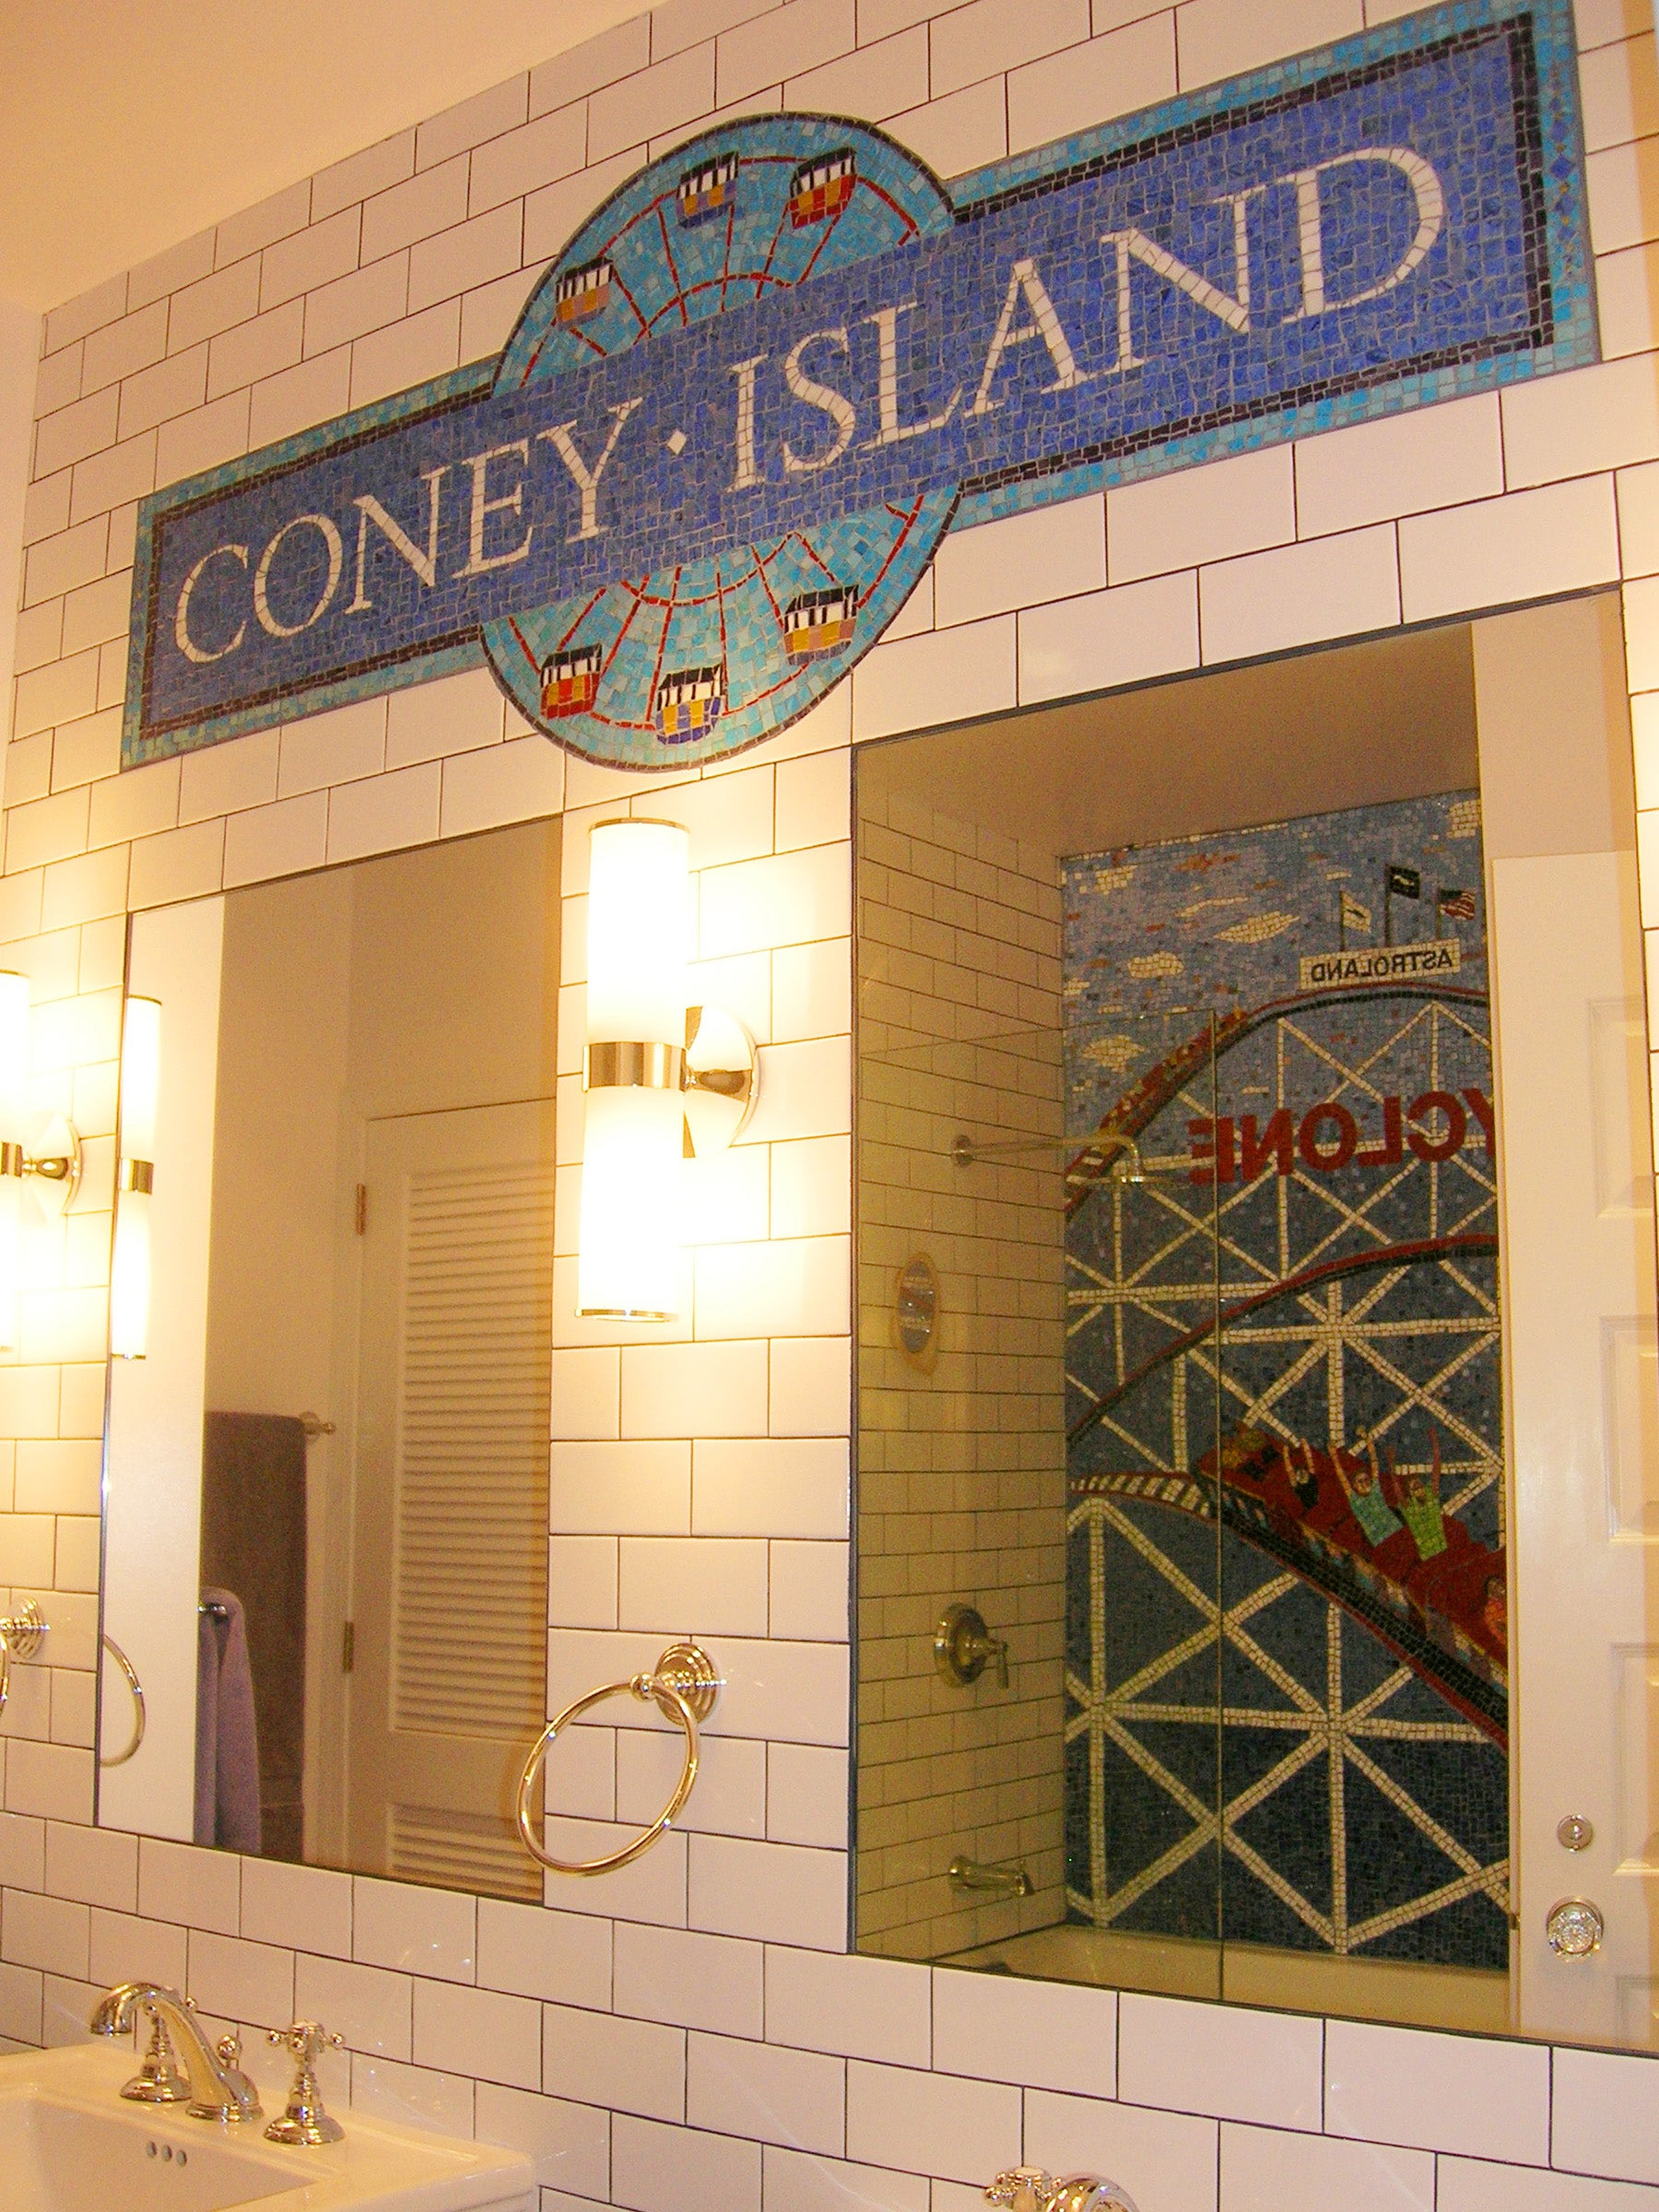 Coney Island Inspired Mosaic by Cathleen Newsham